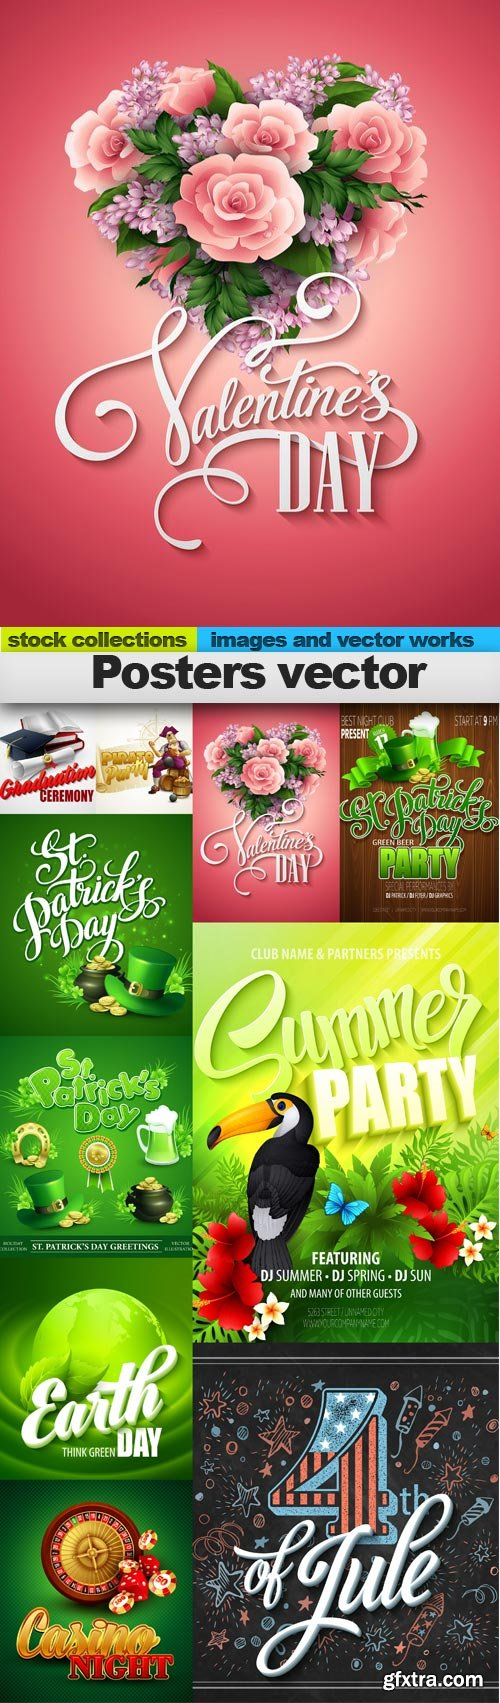 Posters vector, 10 x EPS